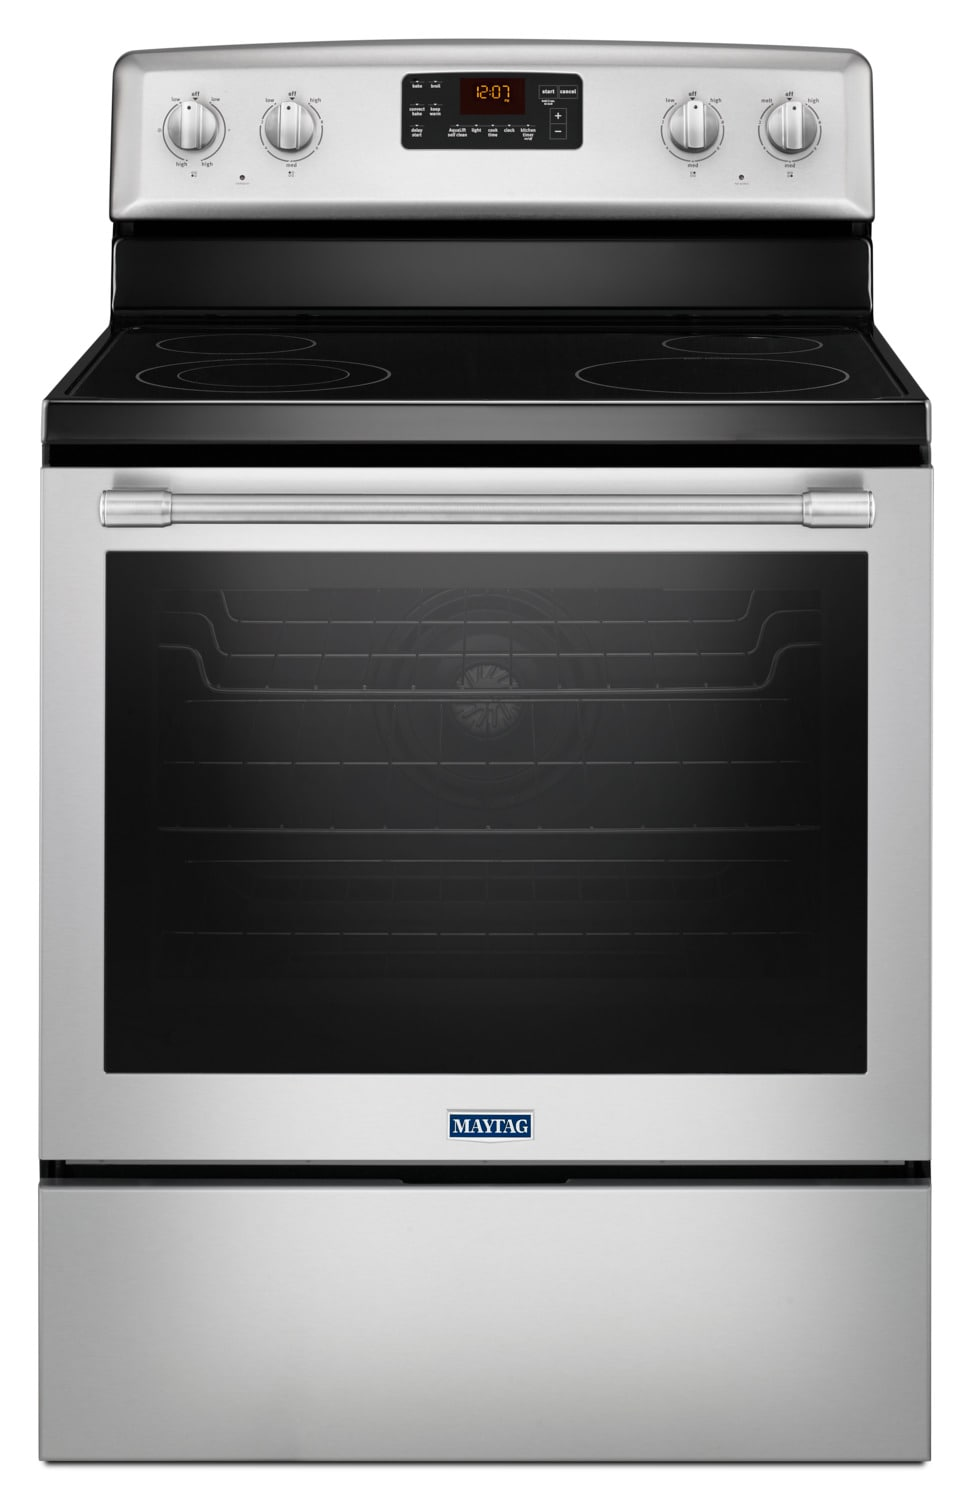 Maytag Stainless Steel Freestanding Electric Convection Range (6.4 Cu. Ft.) - YMER8650FZ